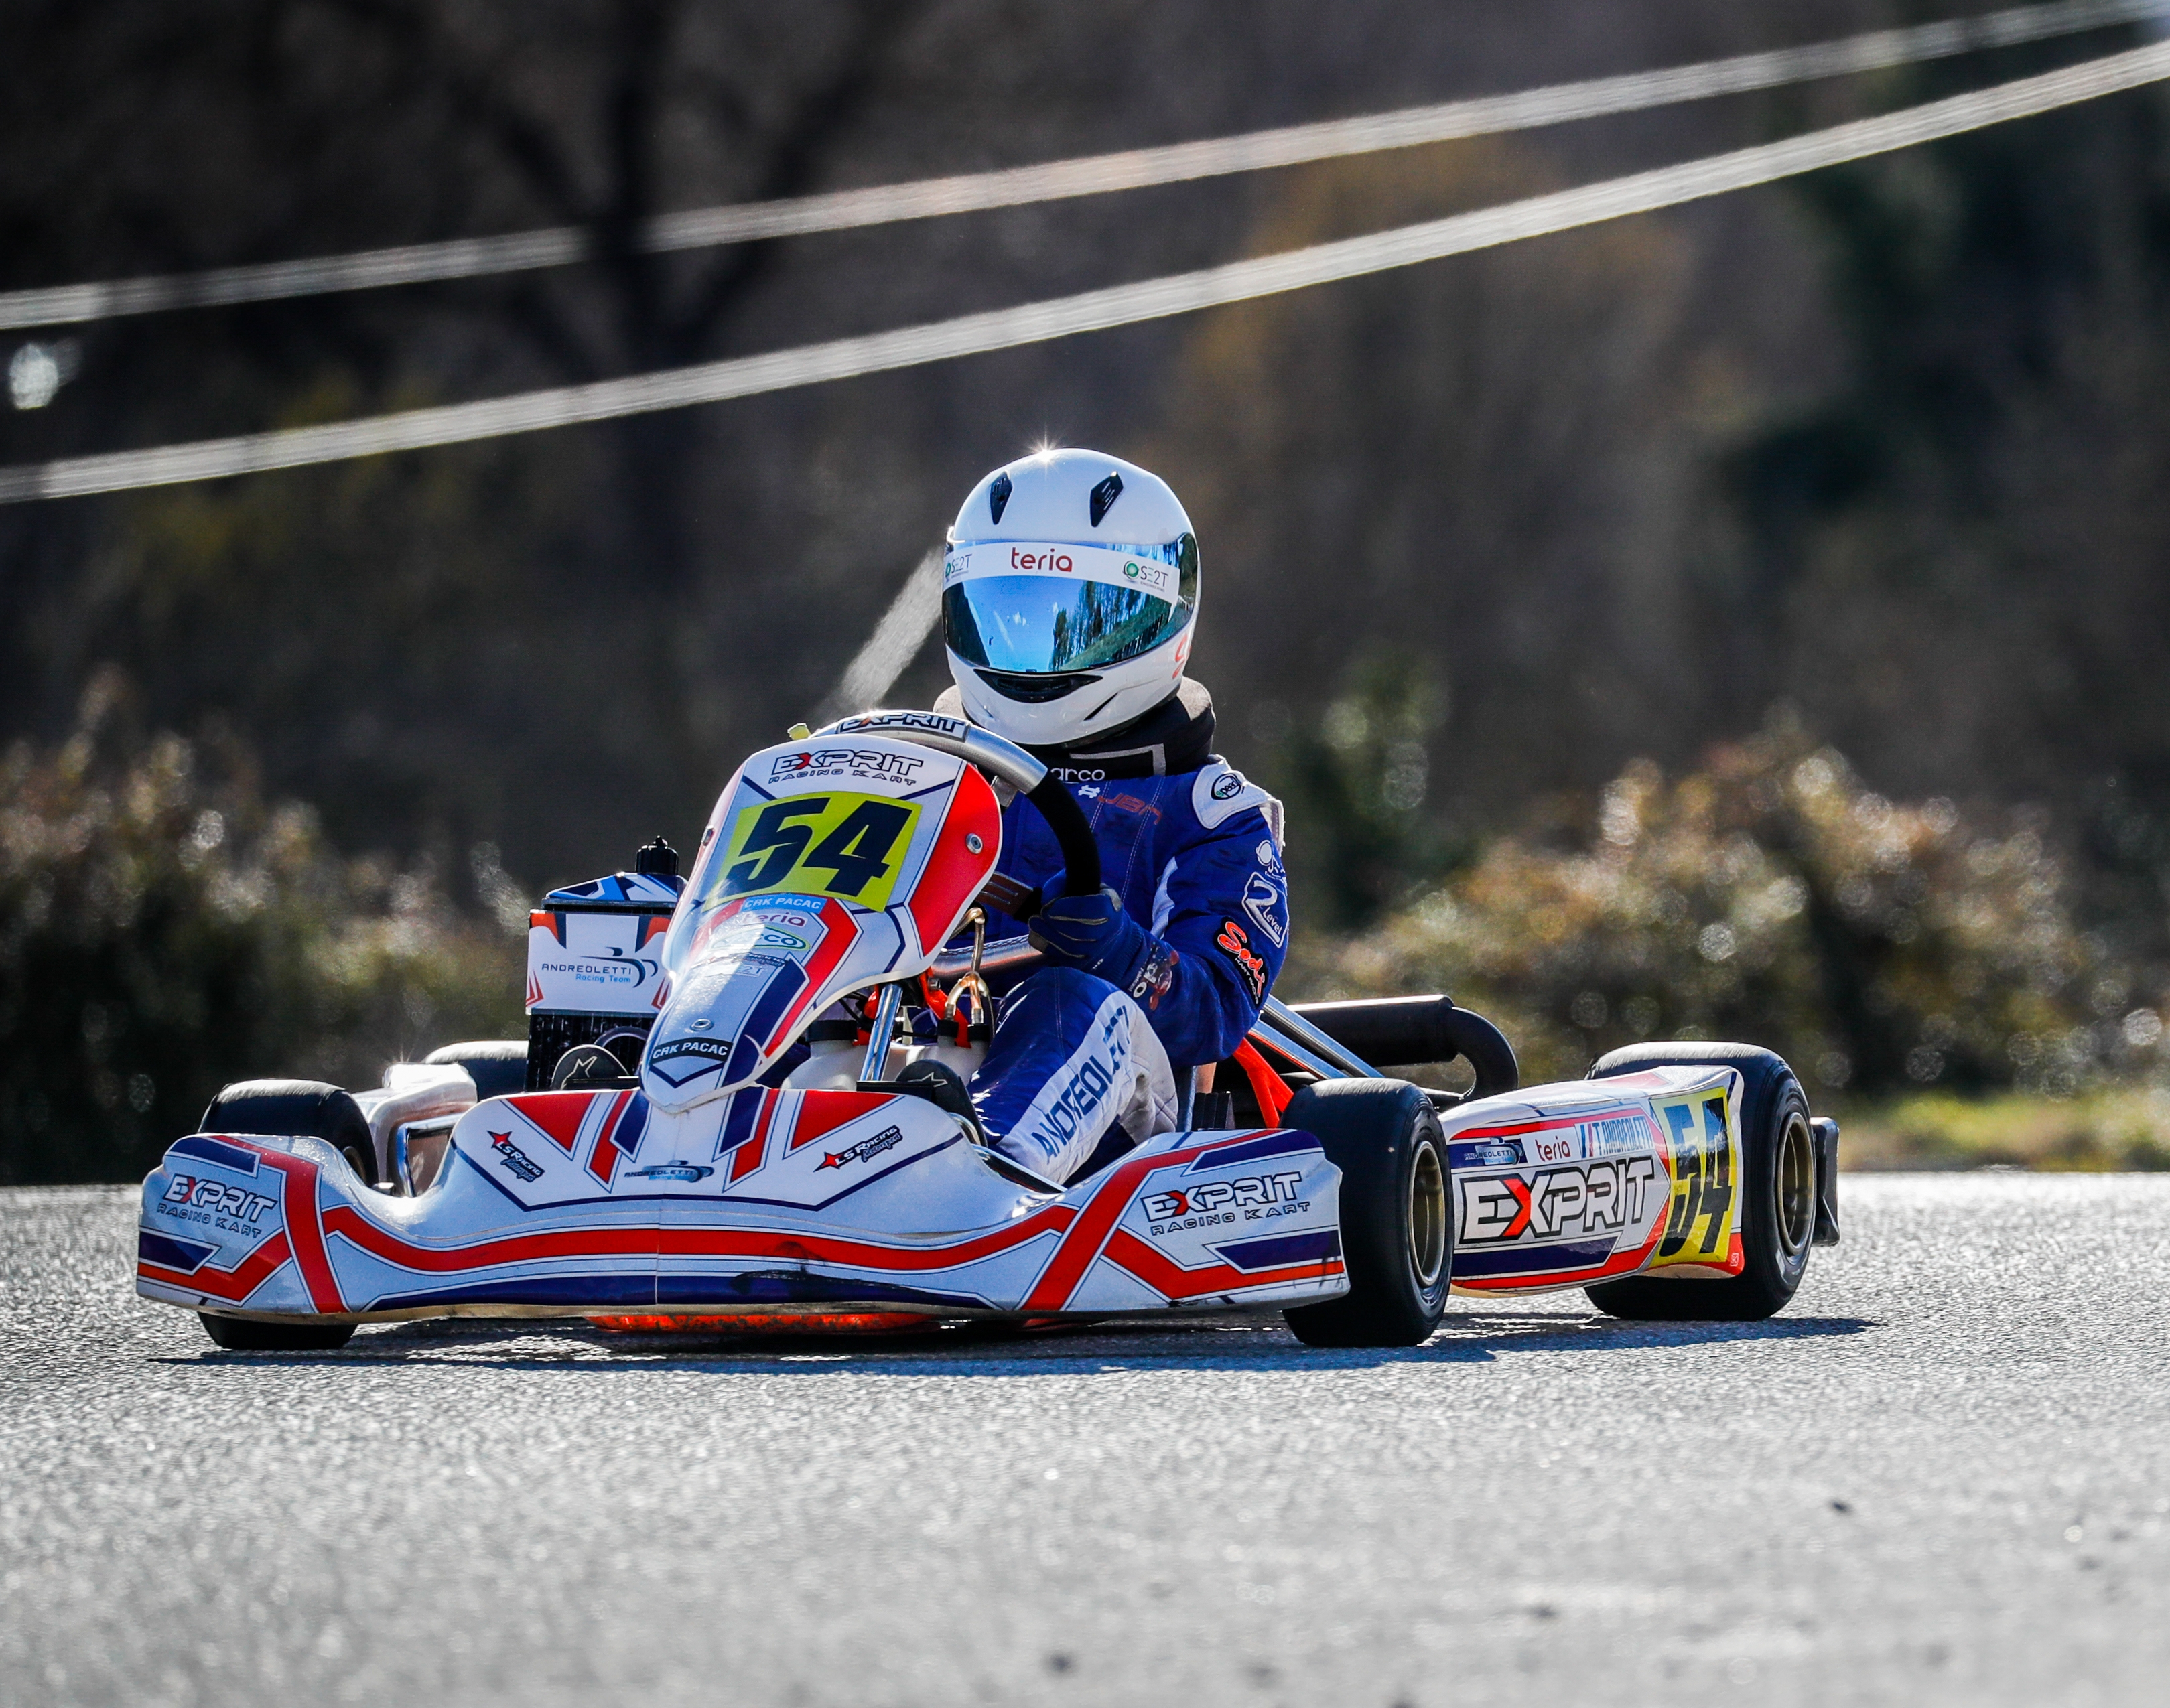 Théo Andreoletti - karting - Brignoles